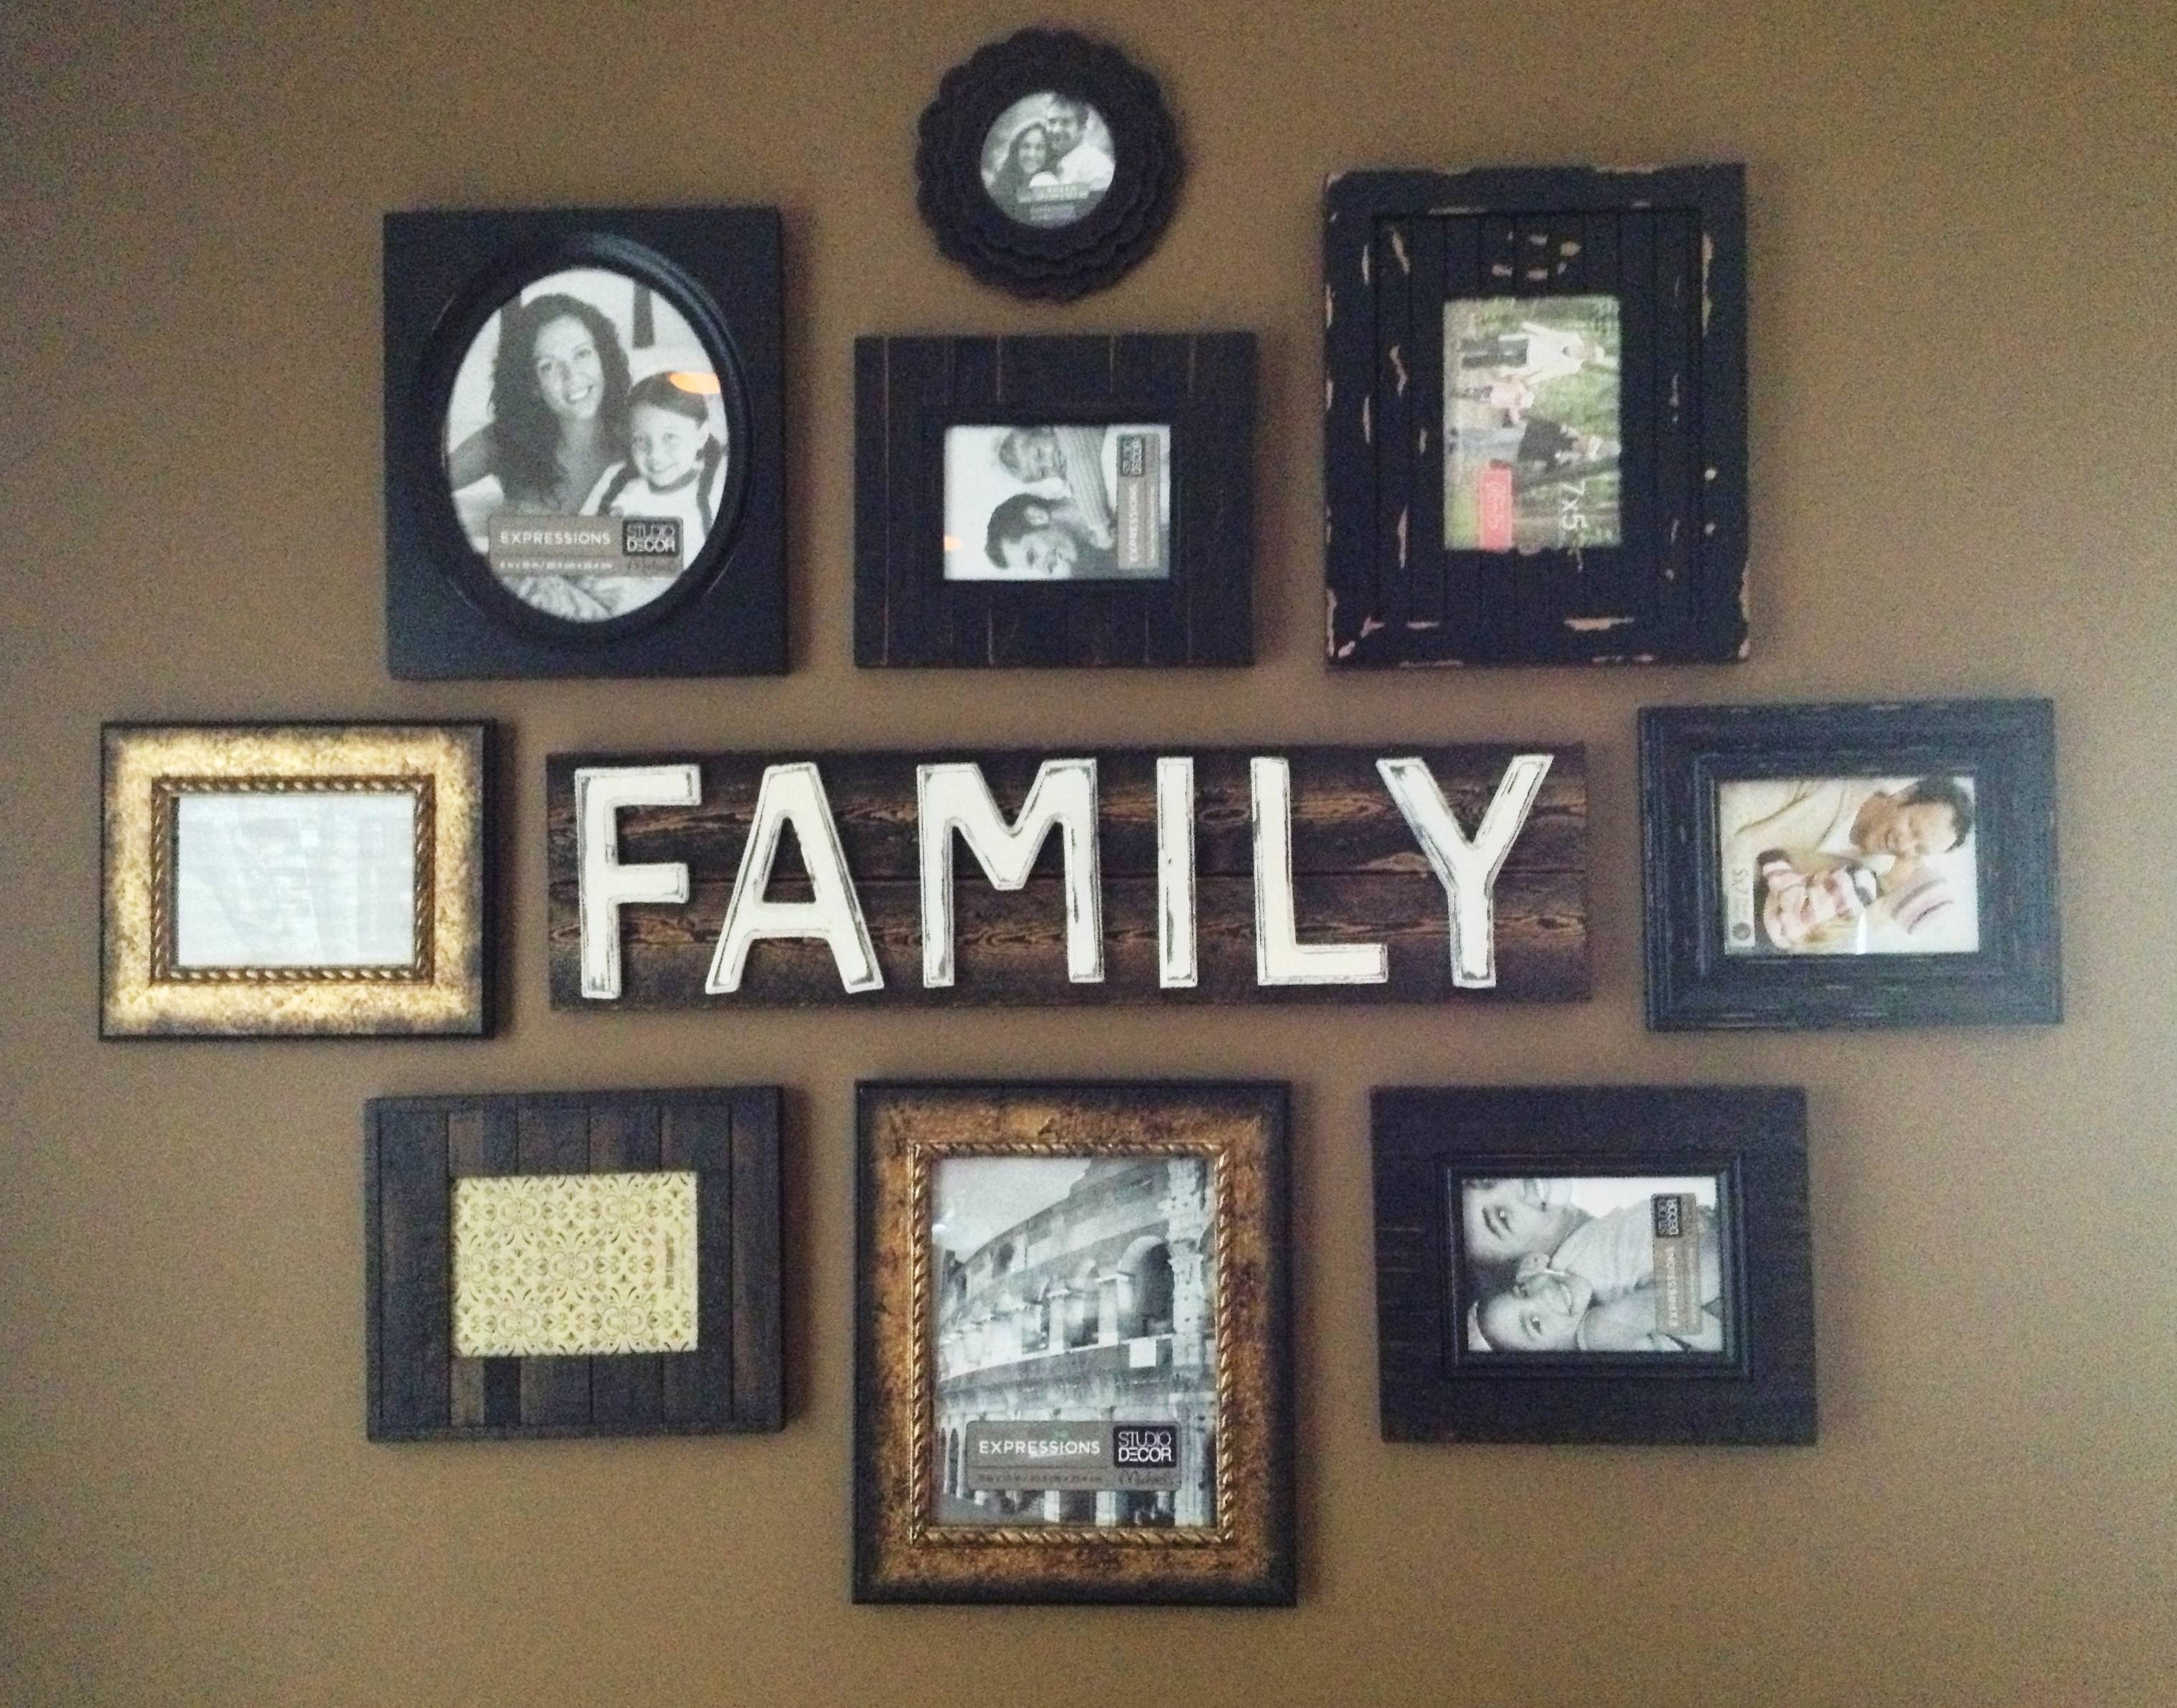 Family Wall Art Picture Frames | Wallartideas With Regard To Best And Newest Family Photo Wall Art (View 17 of 25)